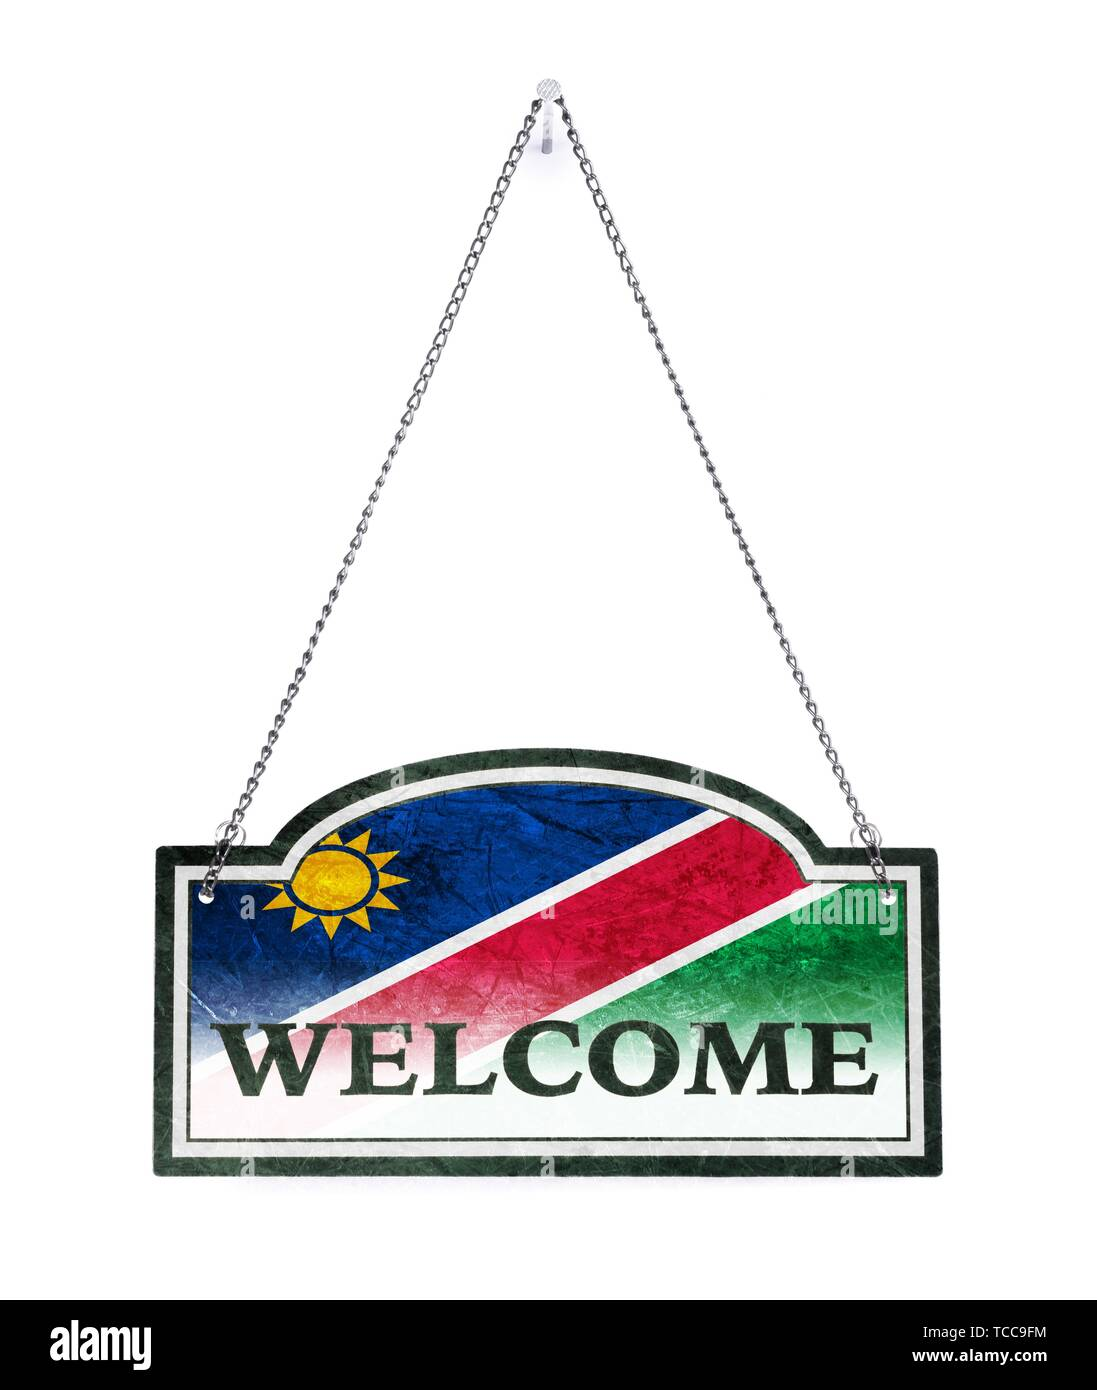 Namibia welcomes you! Old metal sign isolated on white. - Stock Image